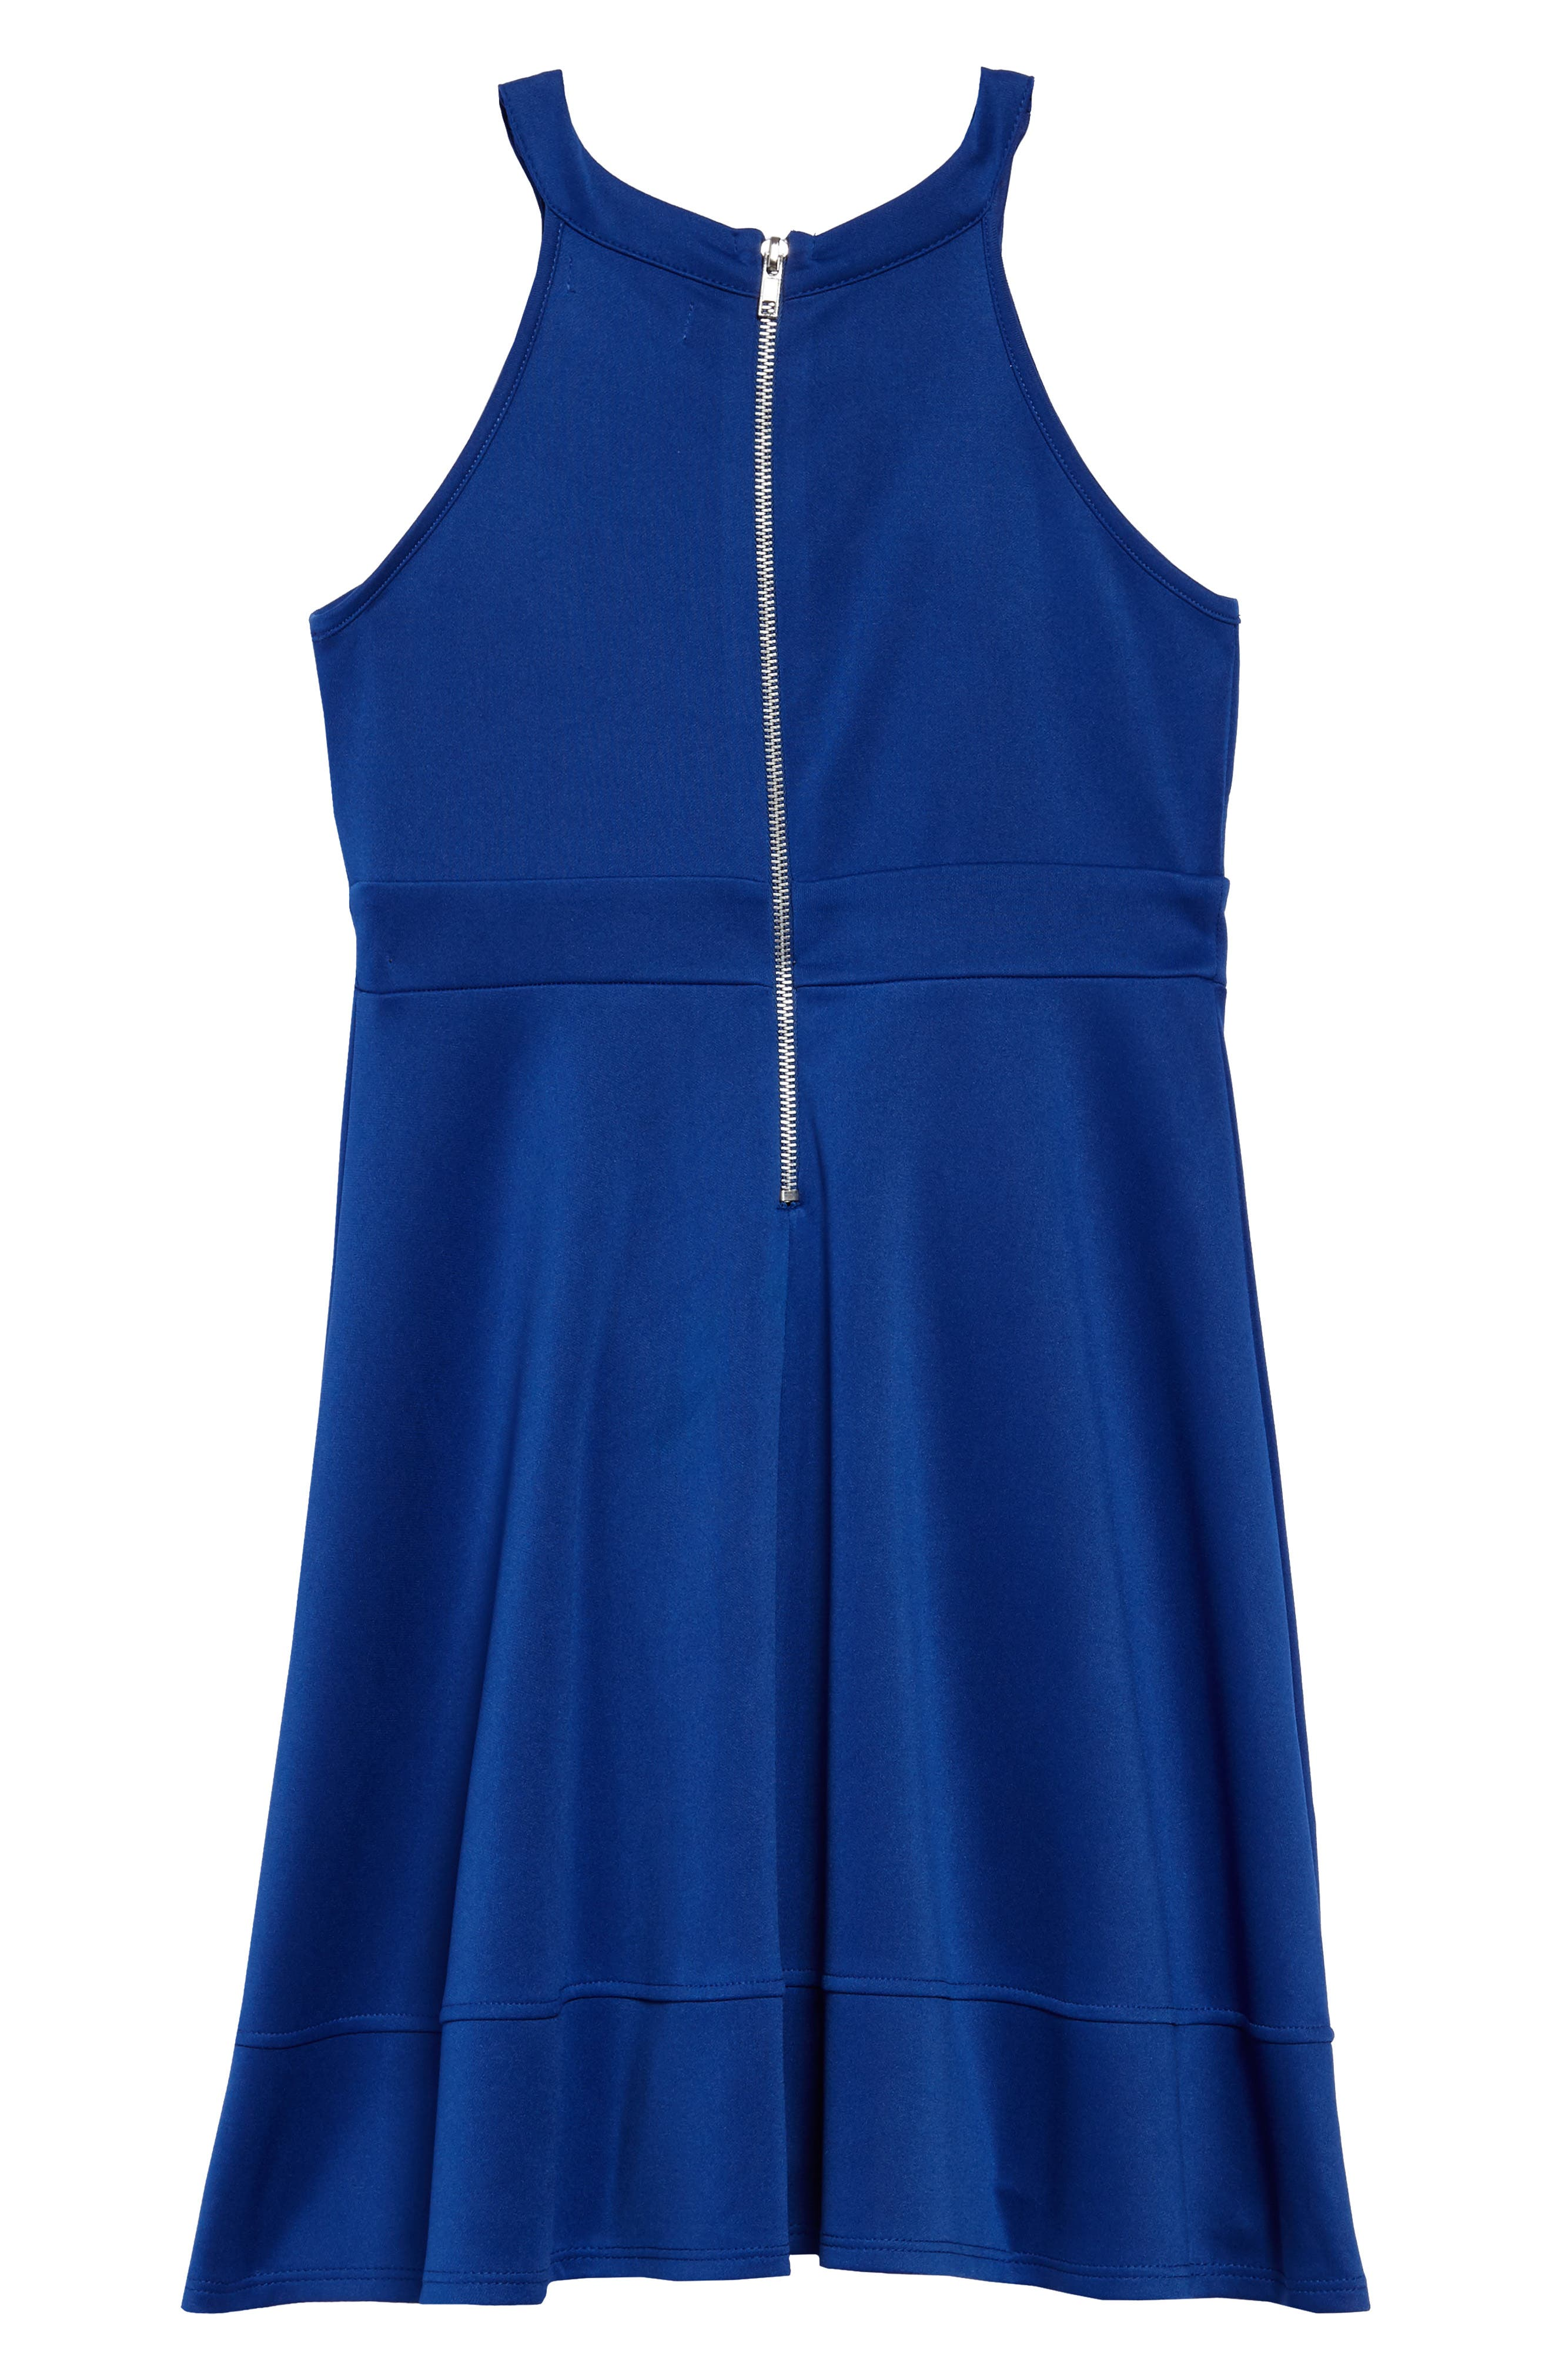 Illusion Neck Skater Dress,                             Alternate thumbnail 2, color,                             Royal